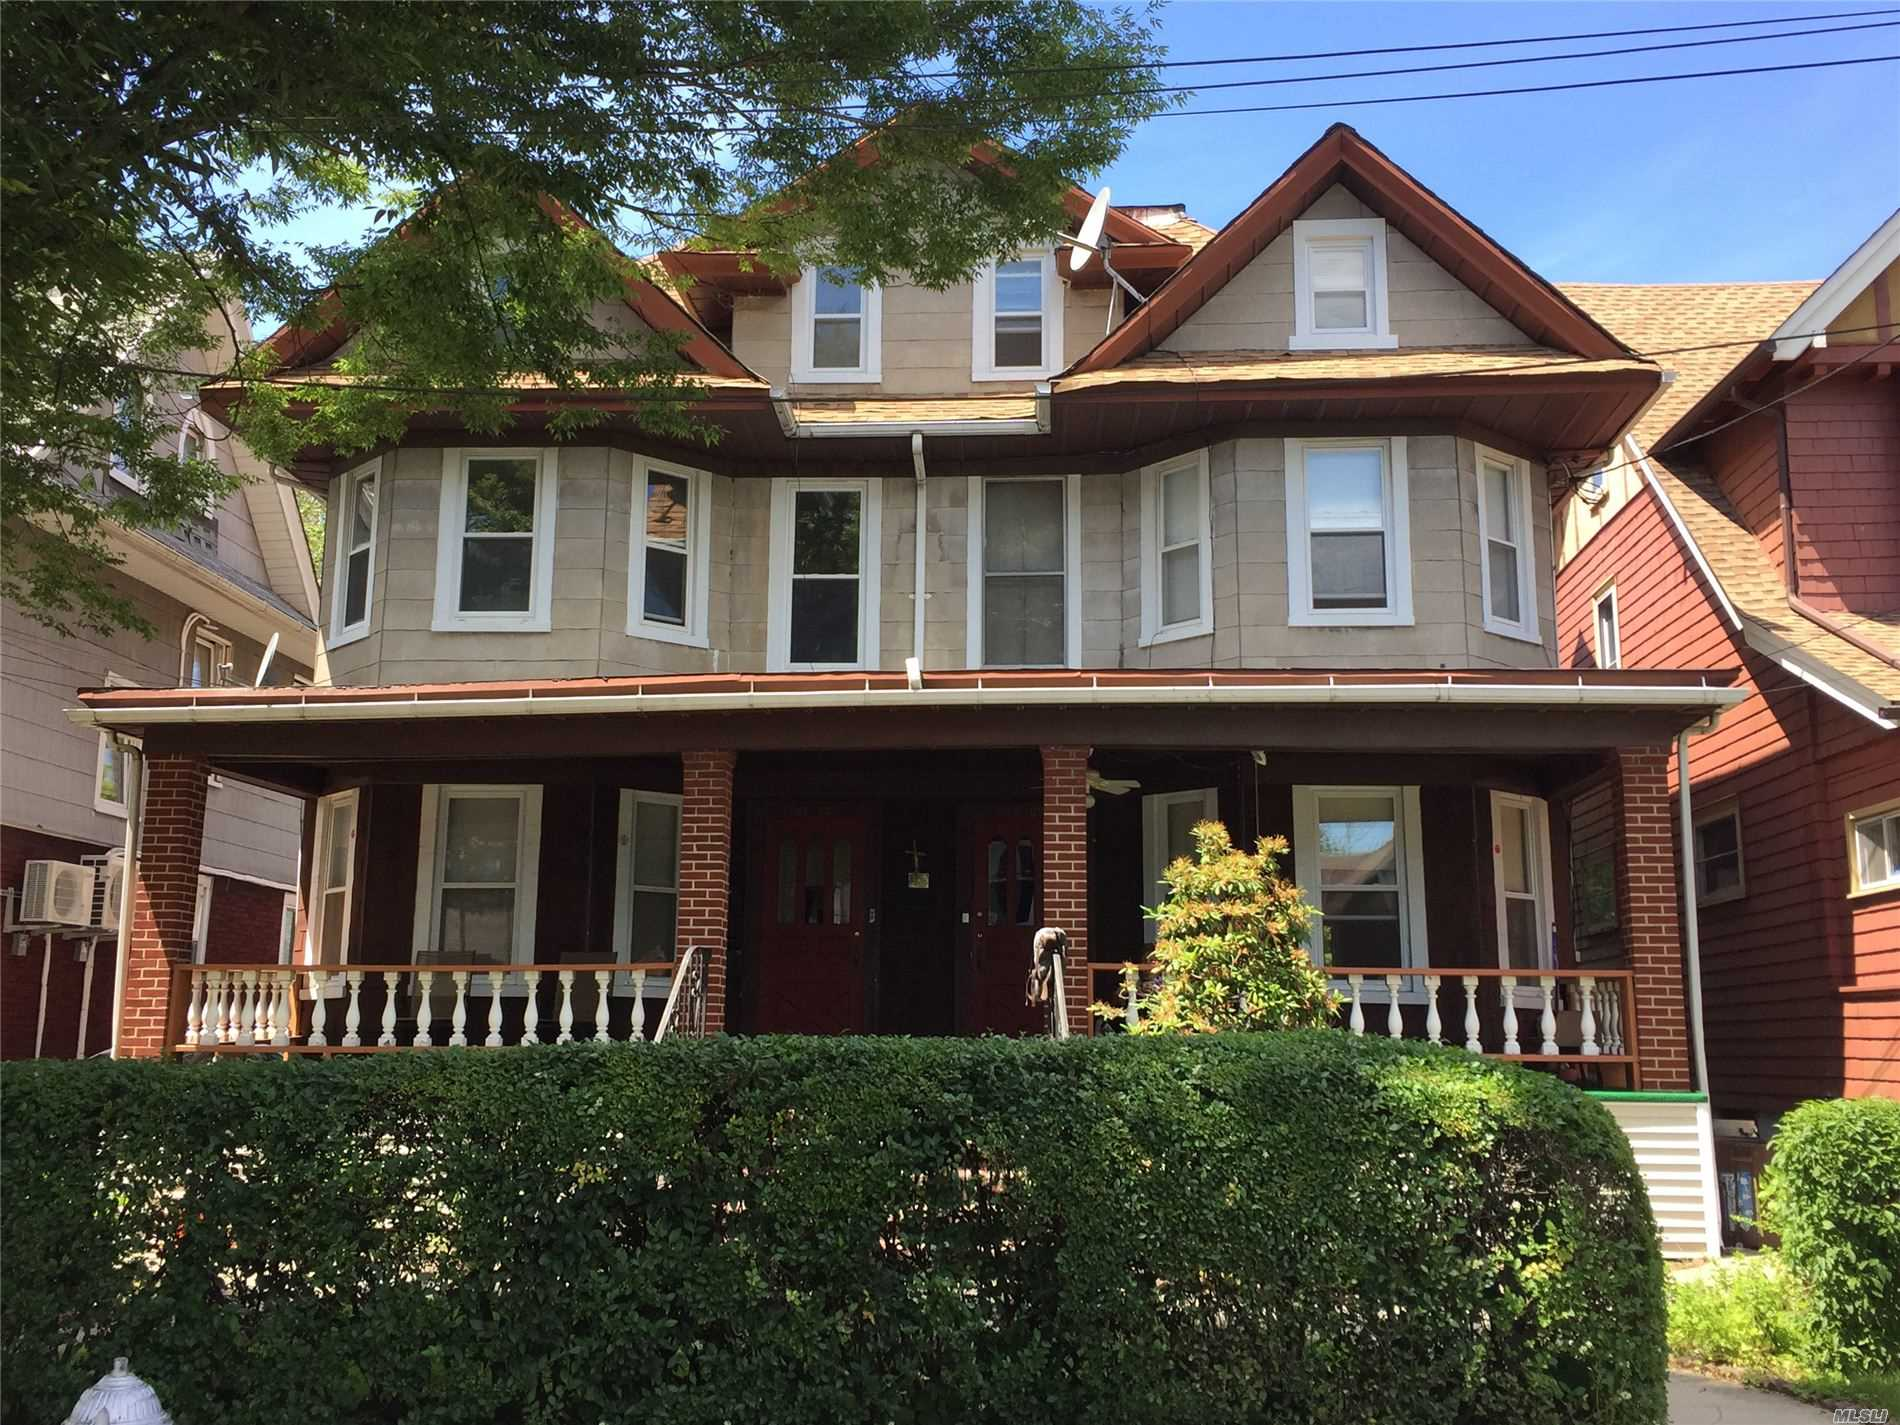 Rare find!! Unique 3 family home with private driveways and 2 car garage. The right side is a 1 family home with 5 bedrooms, 1 bath, full basement with gas boiler. The left side is a 2 family home with 1st floor 1 bedroom apt and 2nd floor 3 bedroom apt, full basement with its own boiler and wrap around porch Close to J train, prime location.